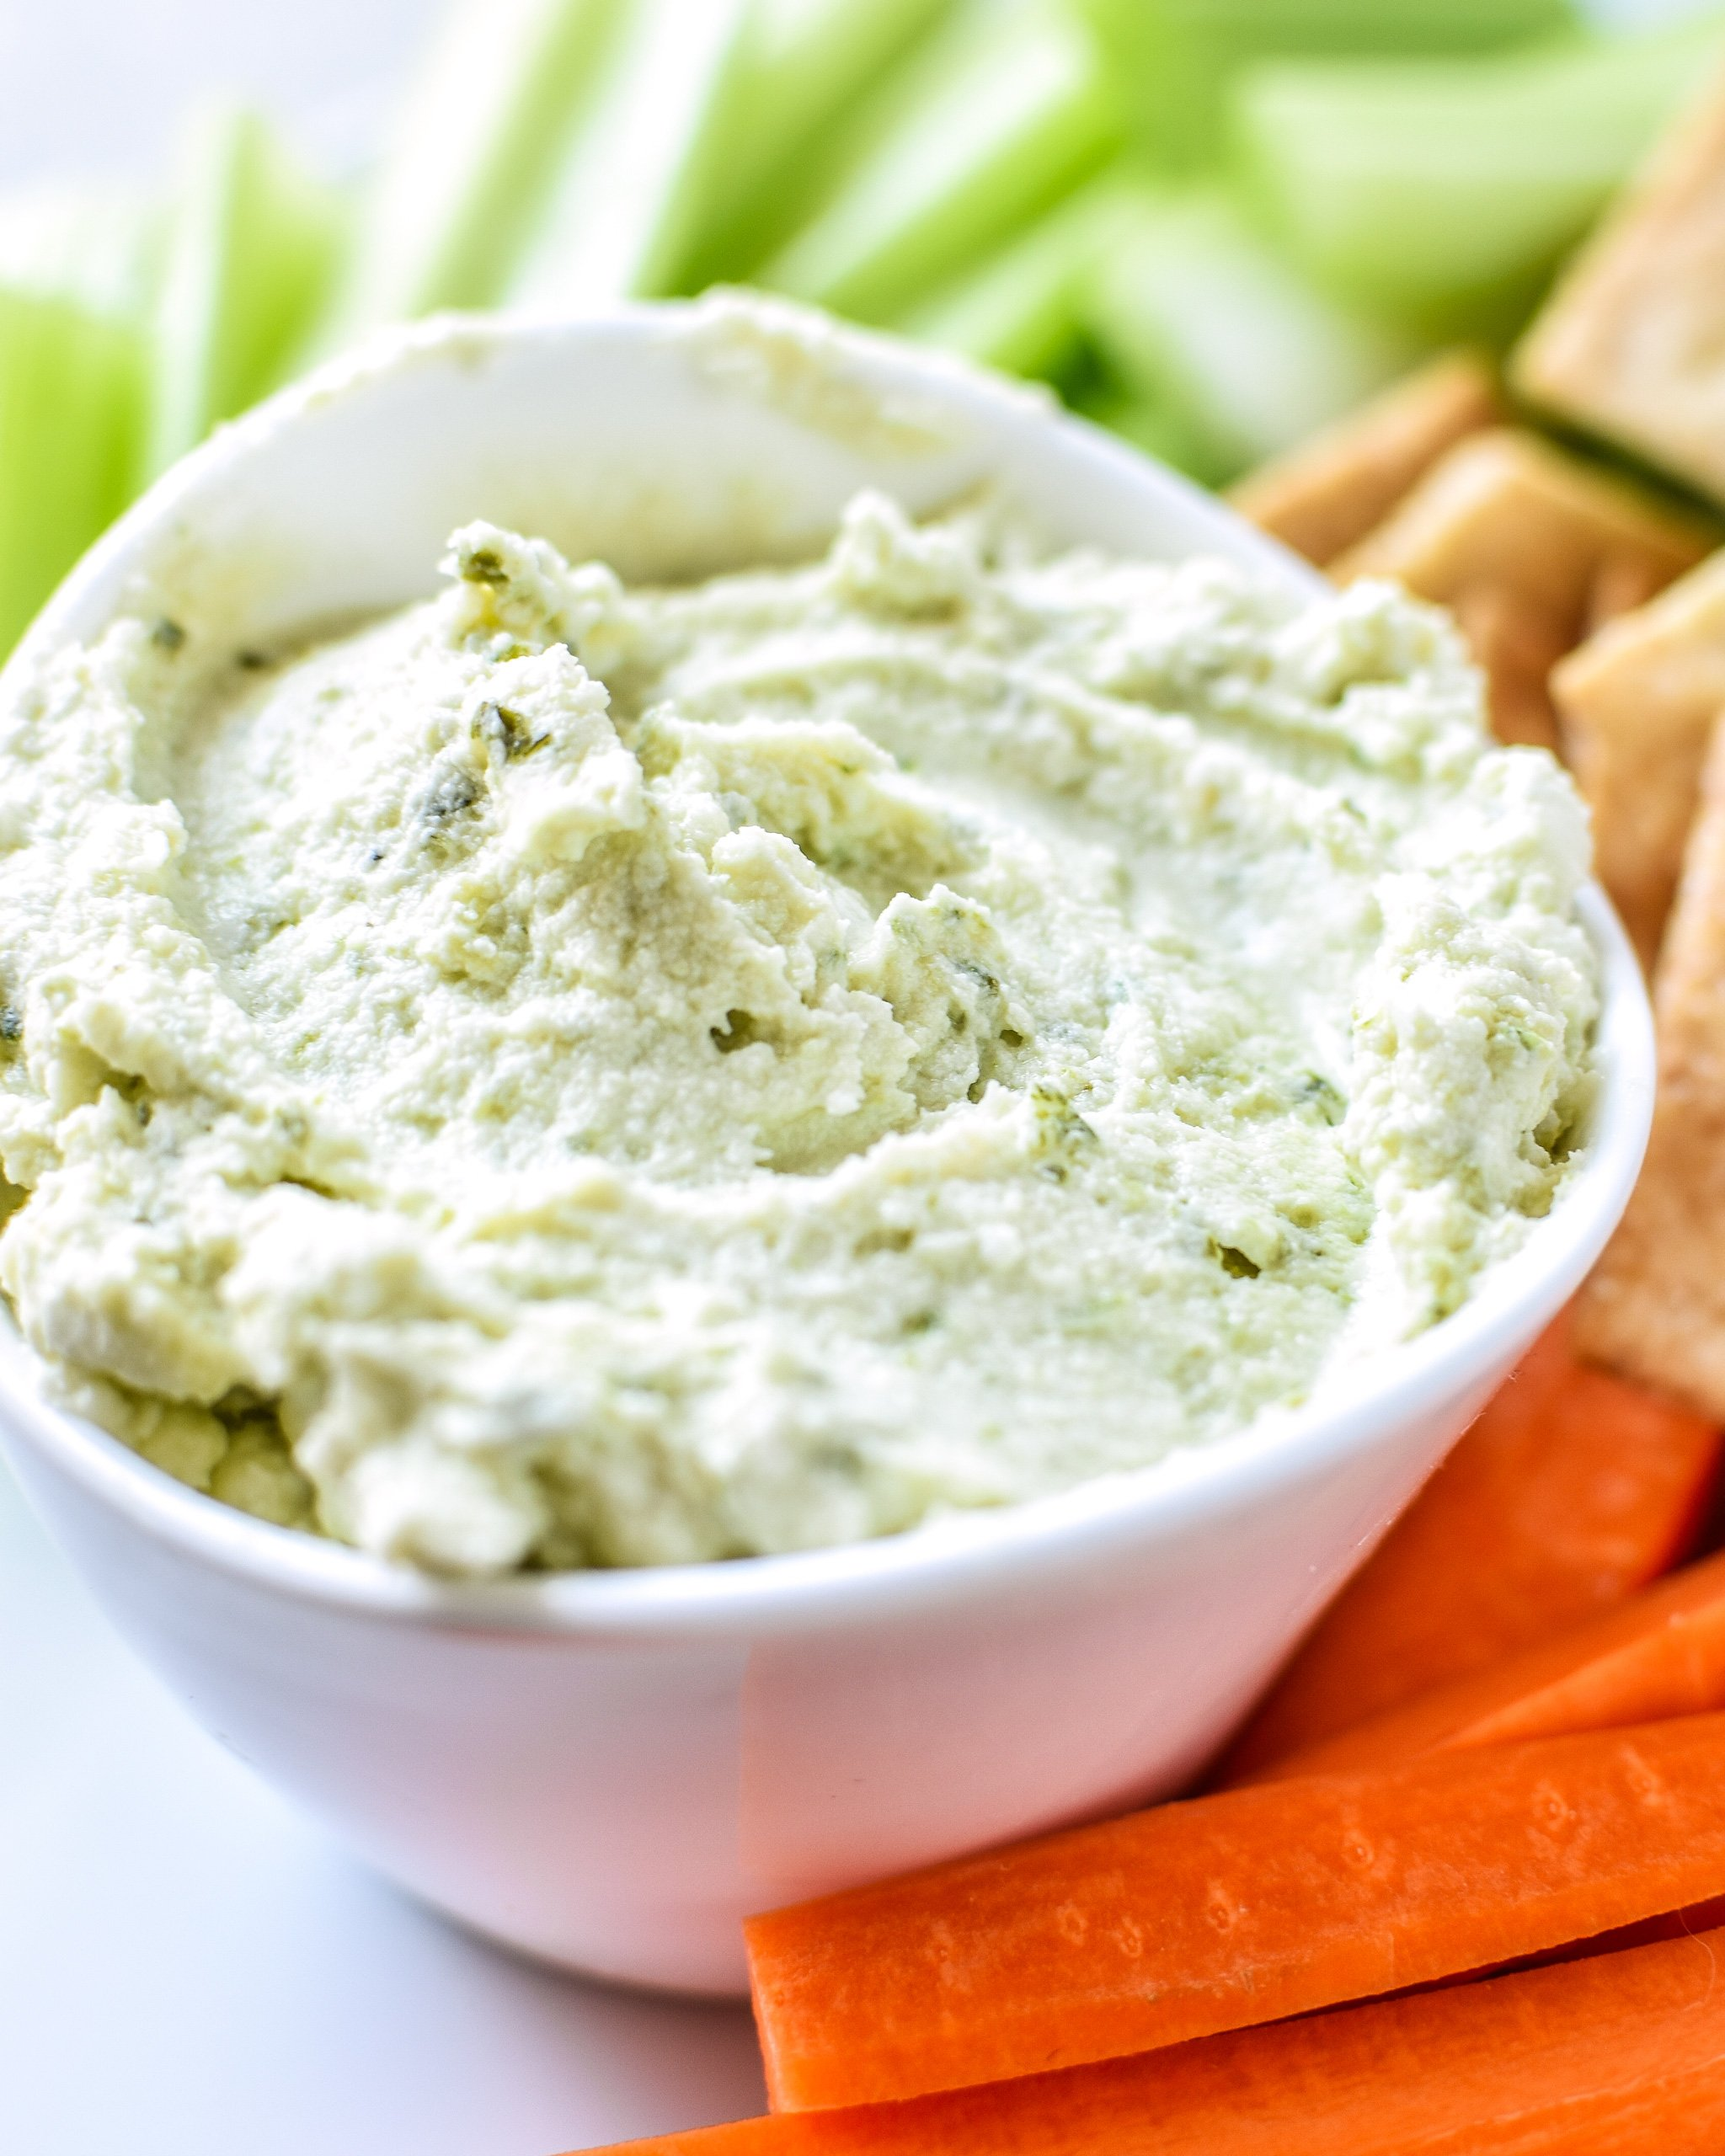 A cup of 3-Ingredient Pesto Goat Cheese Dip with carrots, celery and crackers.